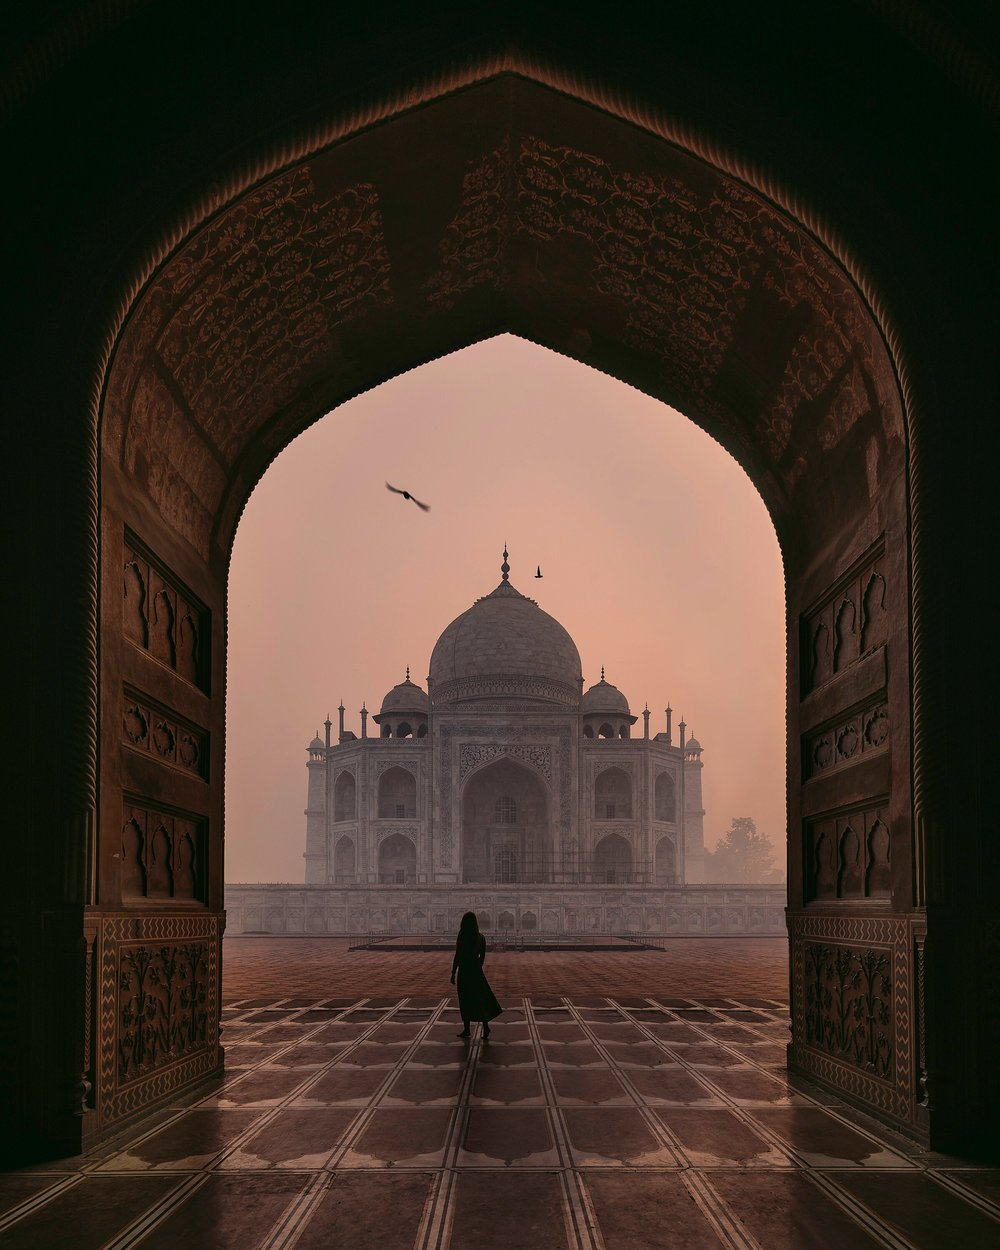 1.Melissa_Findley-TajMahal-INDIA.JPG